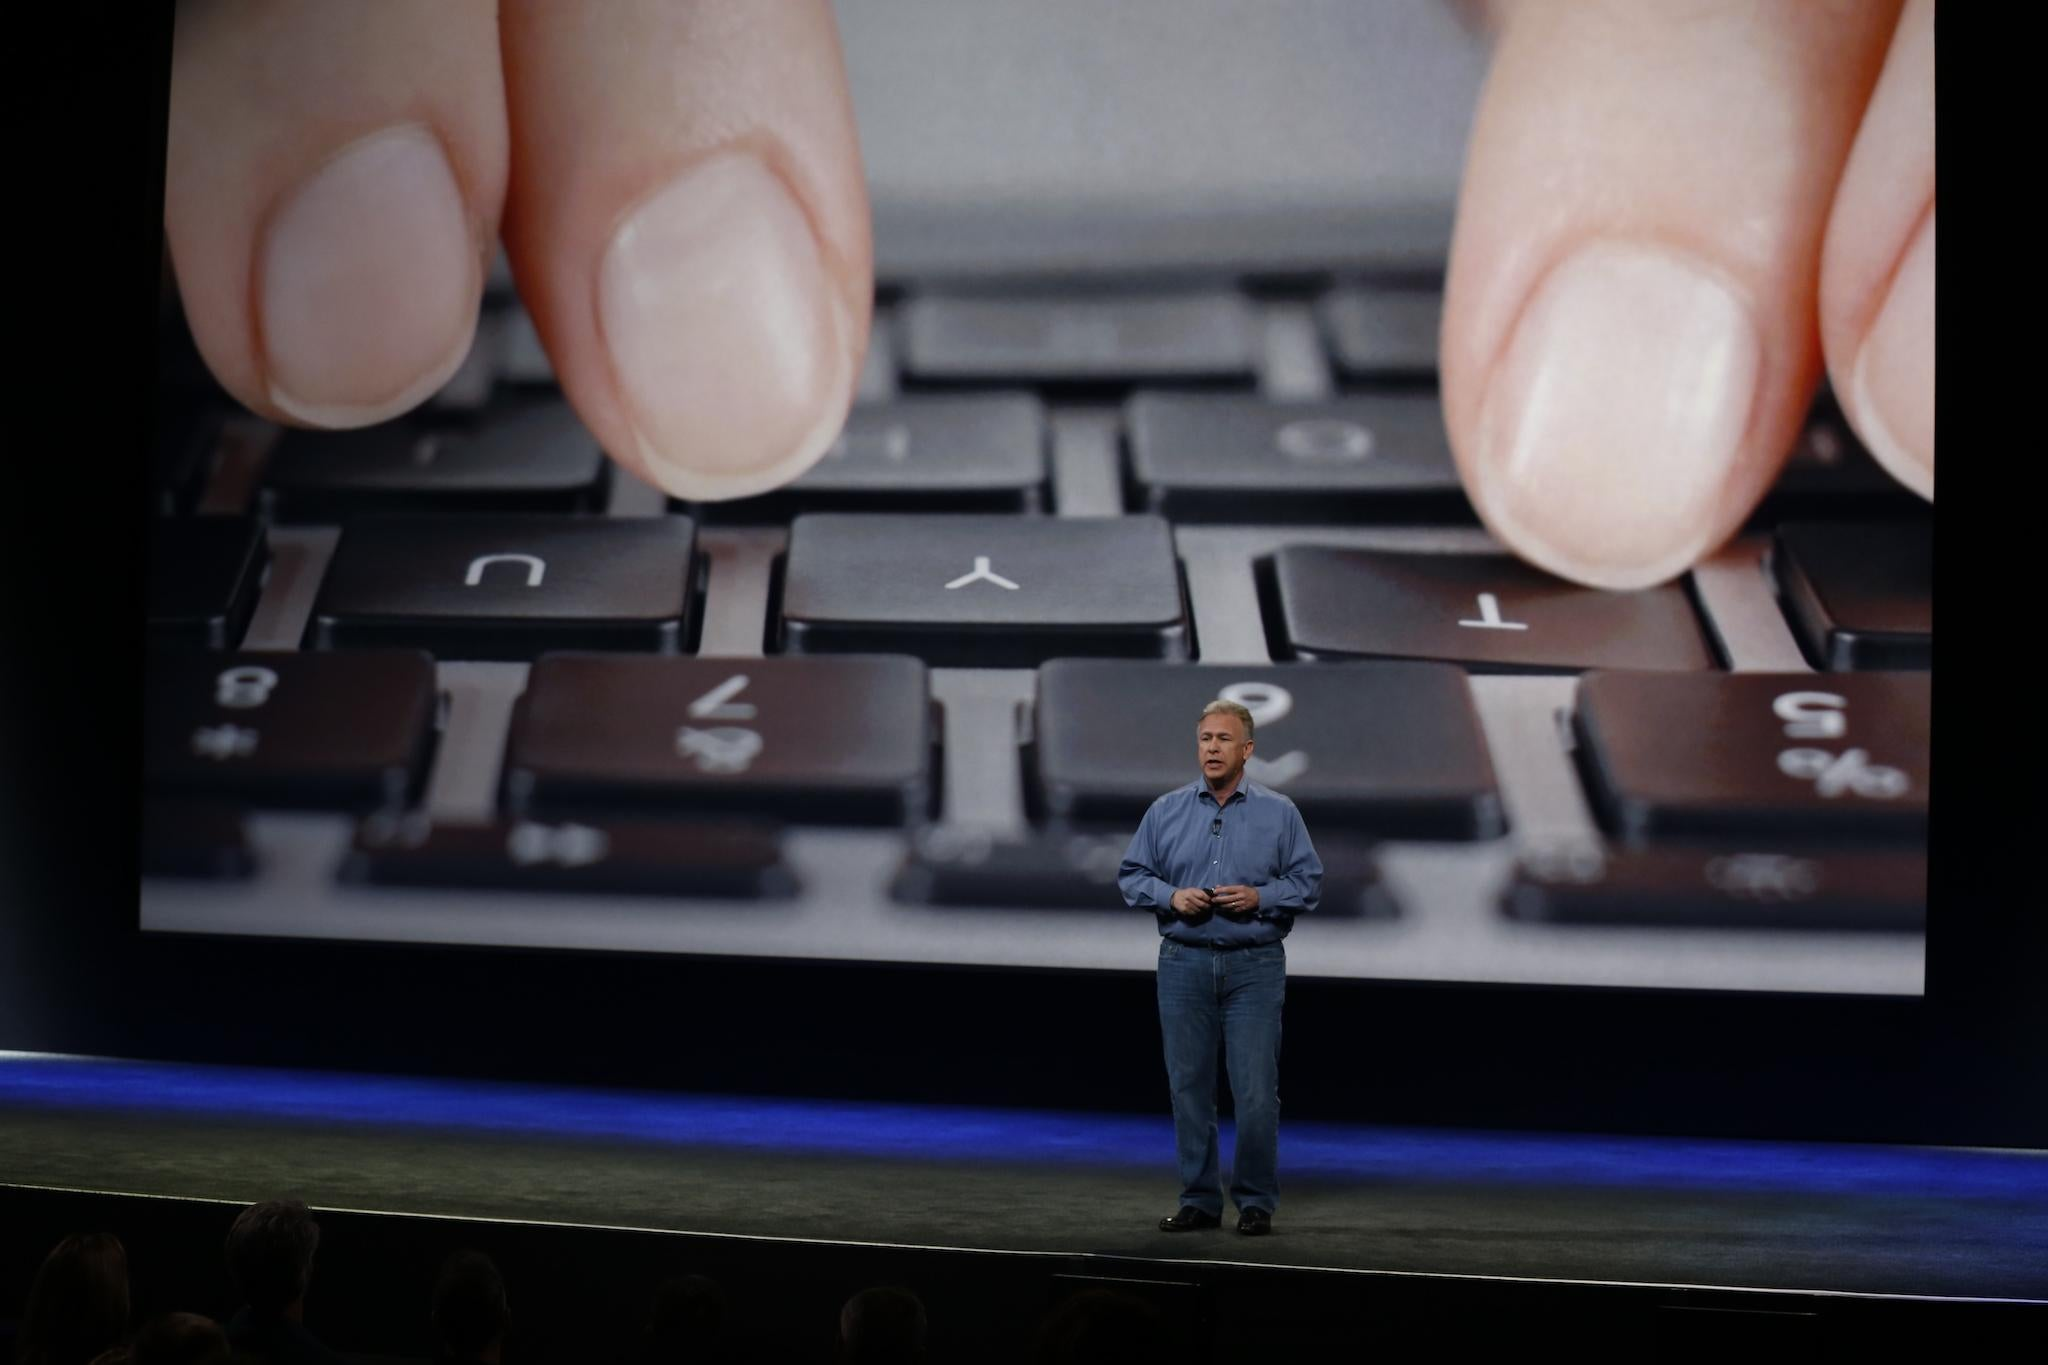 New MacBook Pro: Apple executive Phil Schiller on how it listened to feedback to build, and fix, its new laptop - The Independent